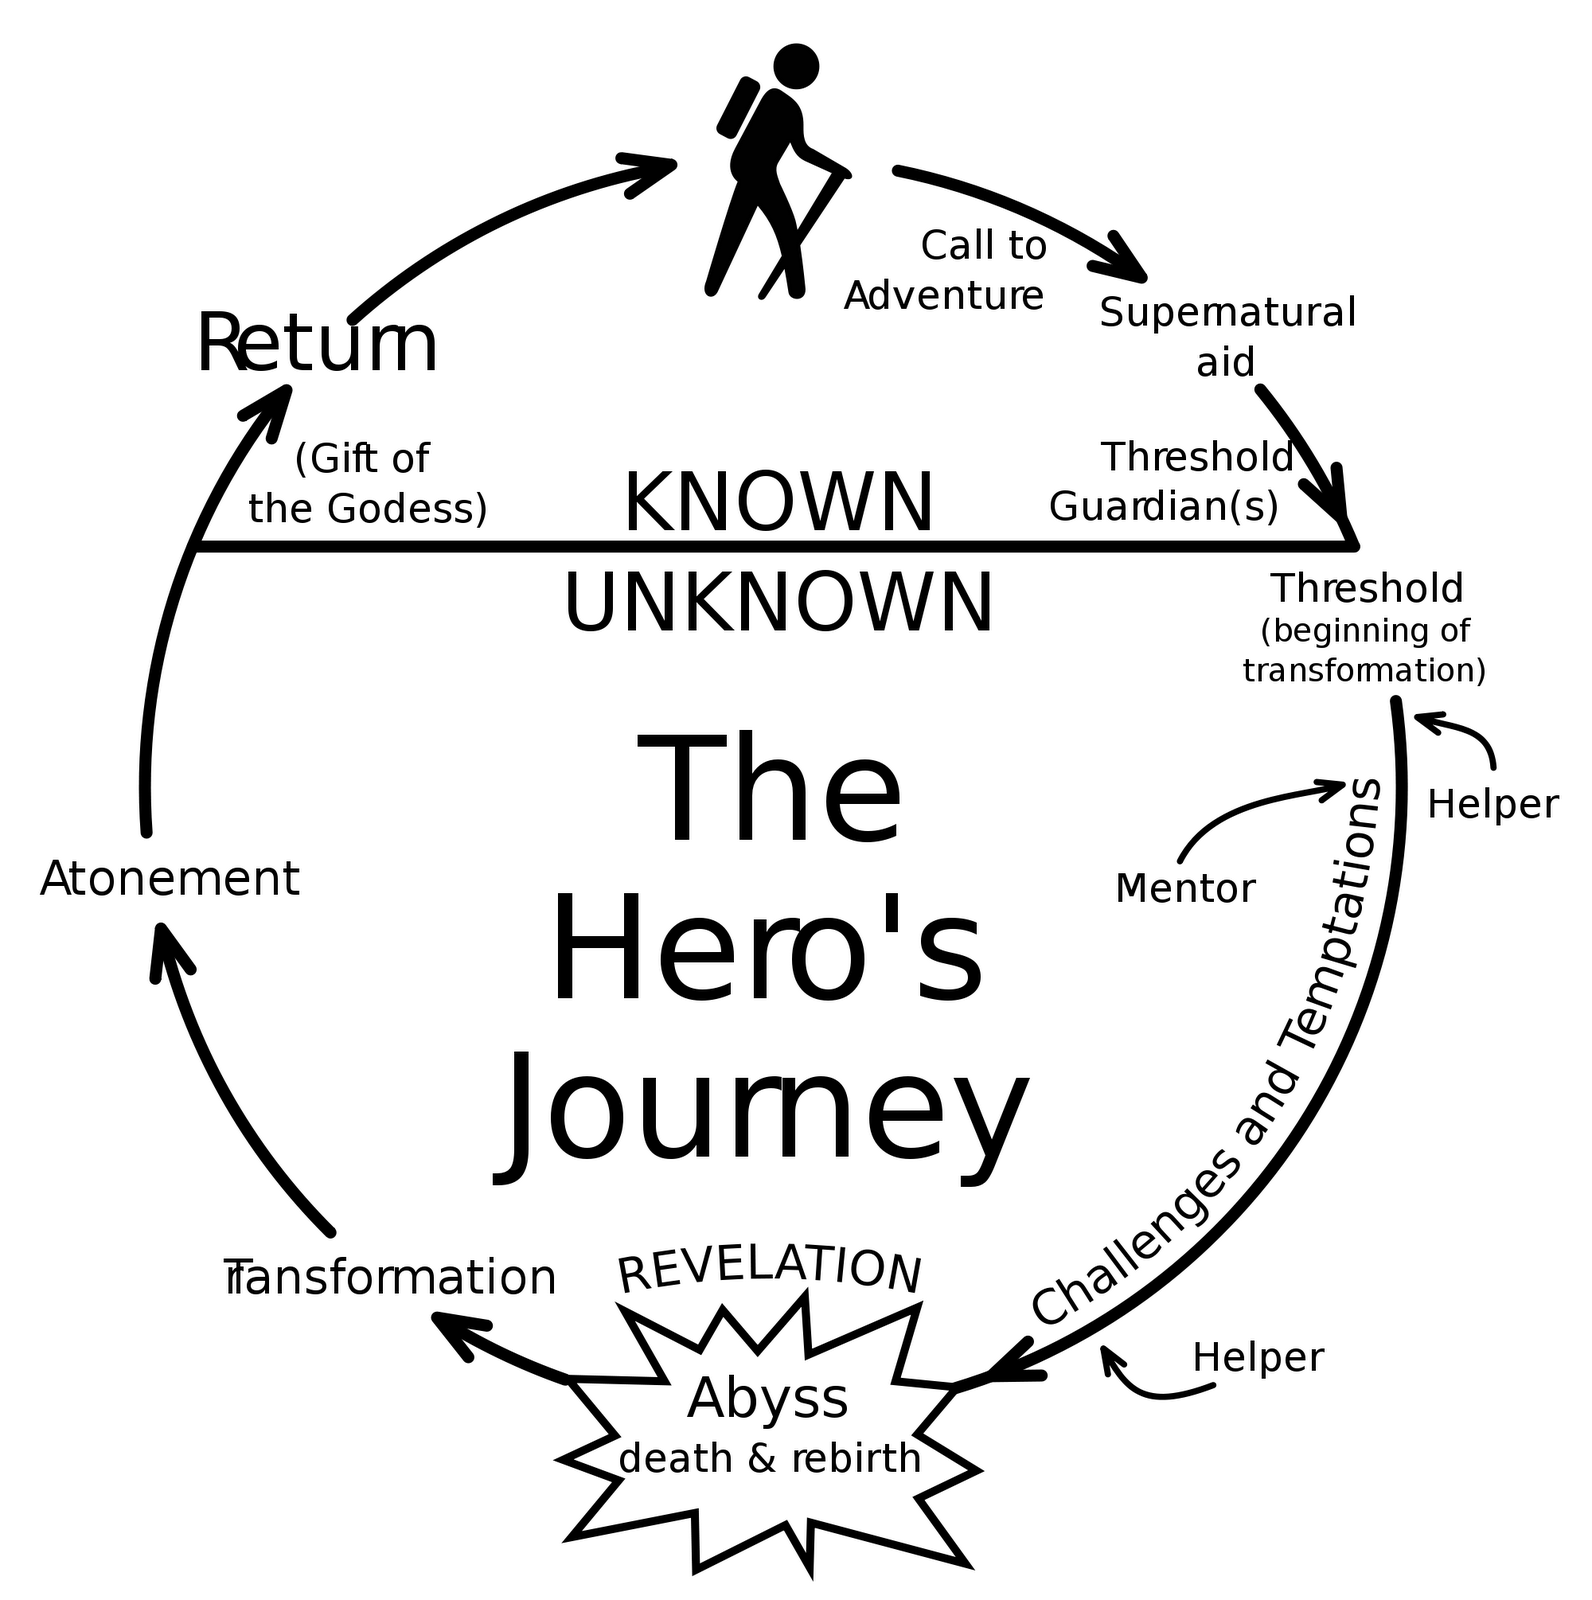 Mr Darlow - Media Monkey: The Heros Journey/Monomyth Cycle